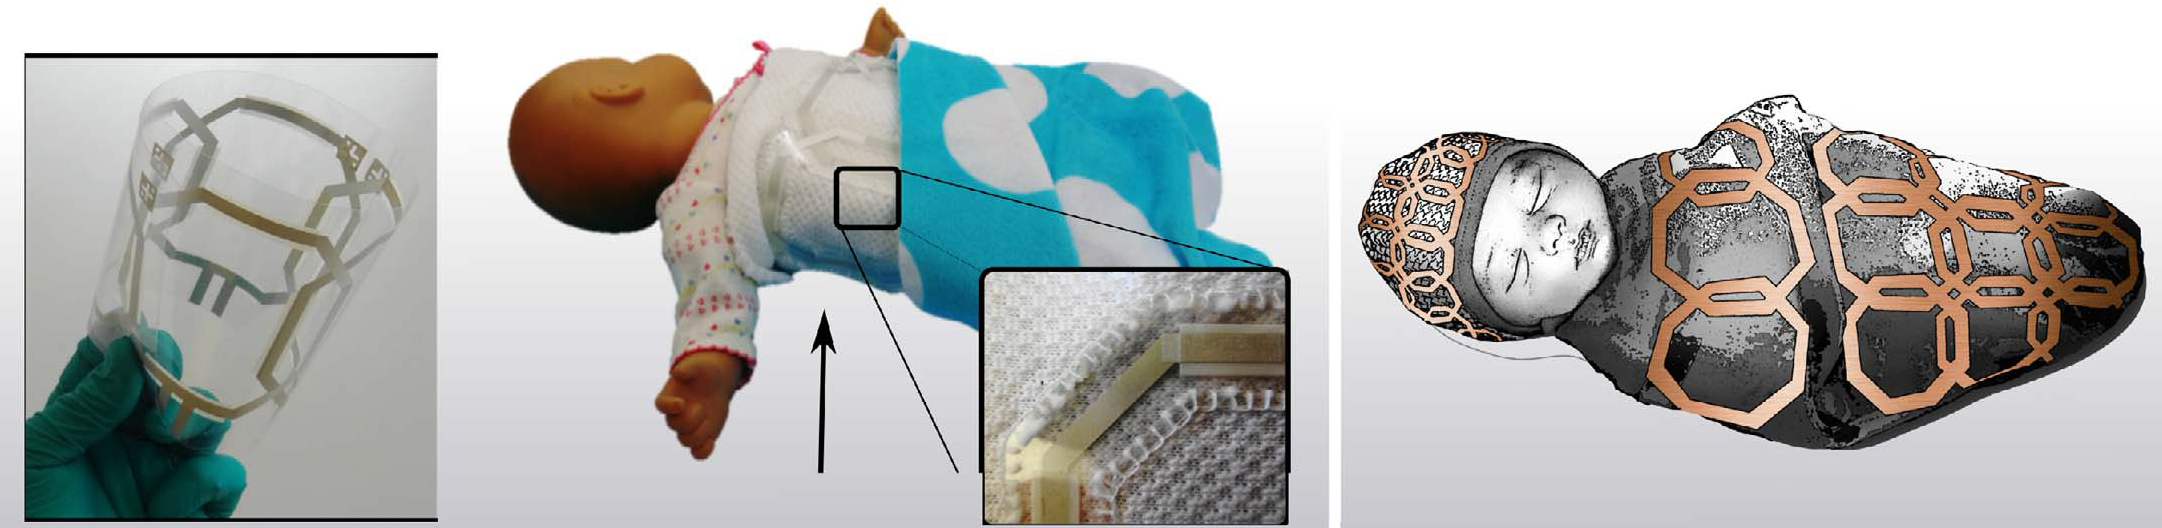 A photo of the flexible MRI coil, a photo of the coil wrapped around a doll, and a drawing showing the coils in a blanket and hat wrapped around a baby.